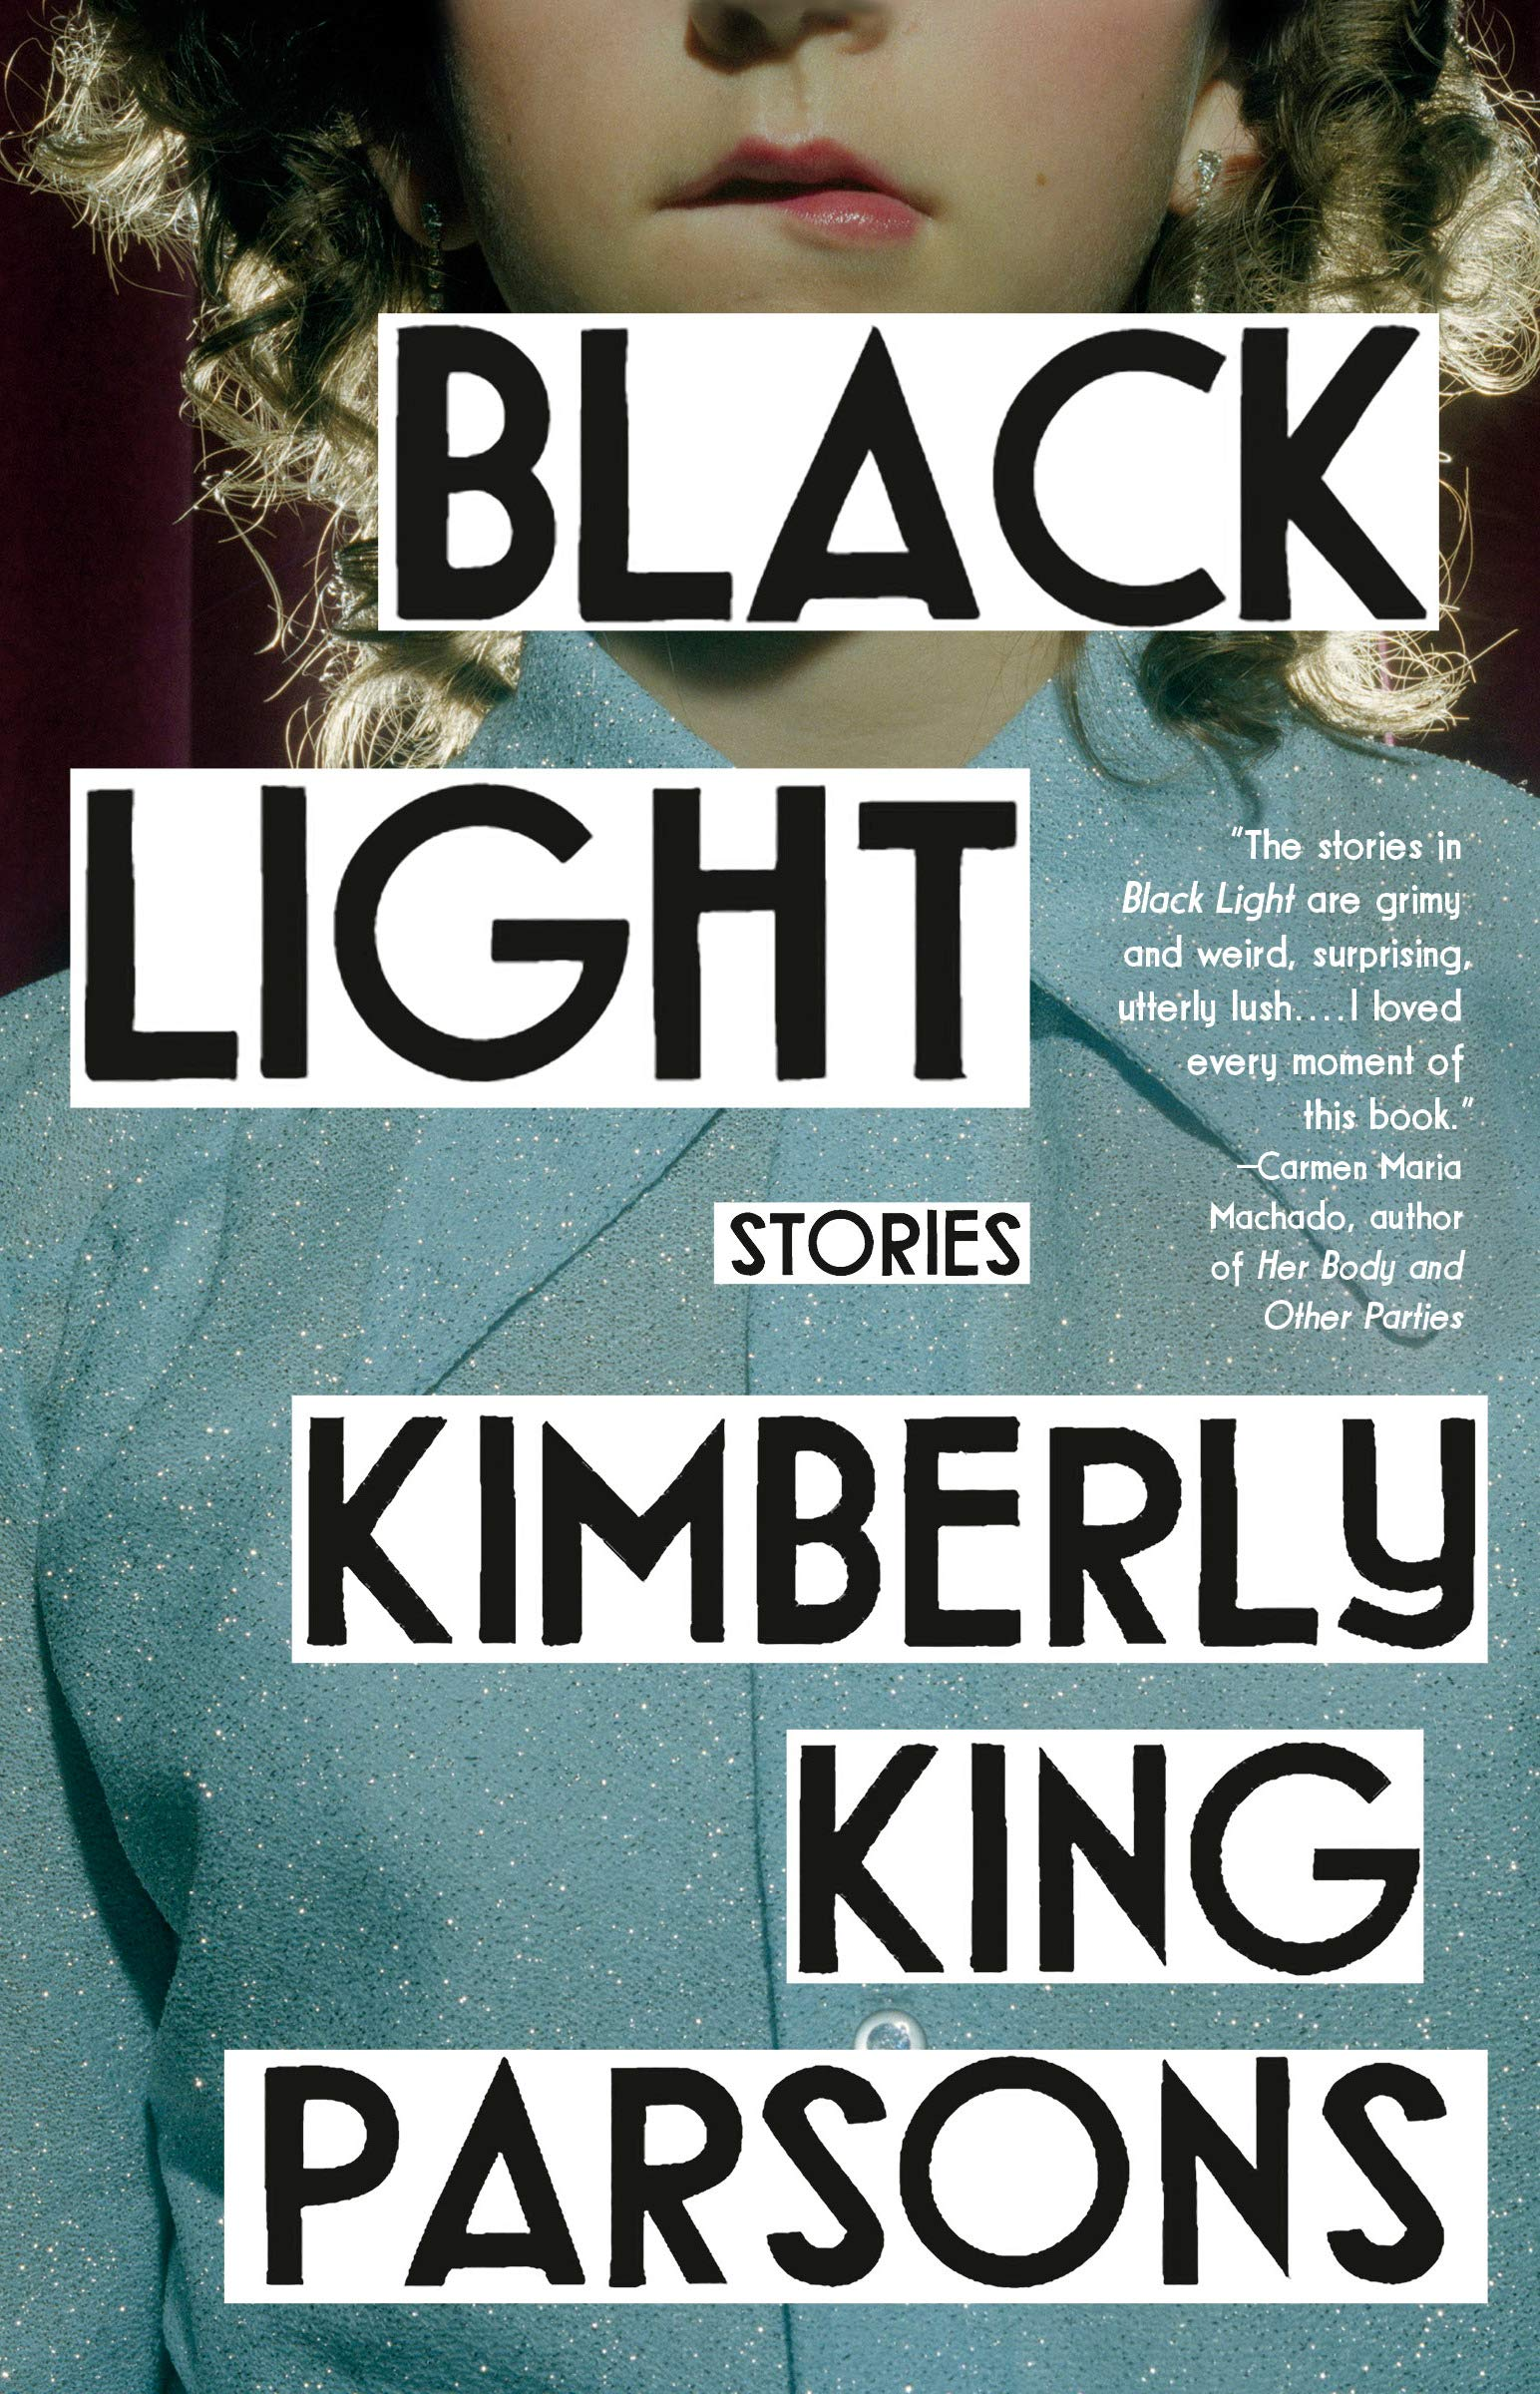 """""""Magic in the Mundane: The Millions interviews Kimberly King Parsons"""", The Millions, August, 2019 -"""